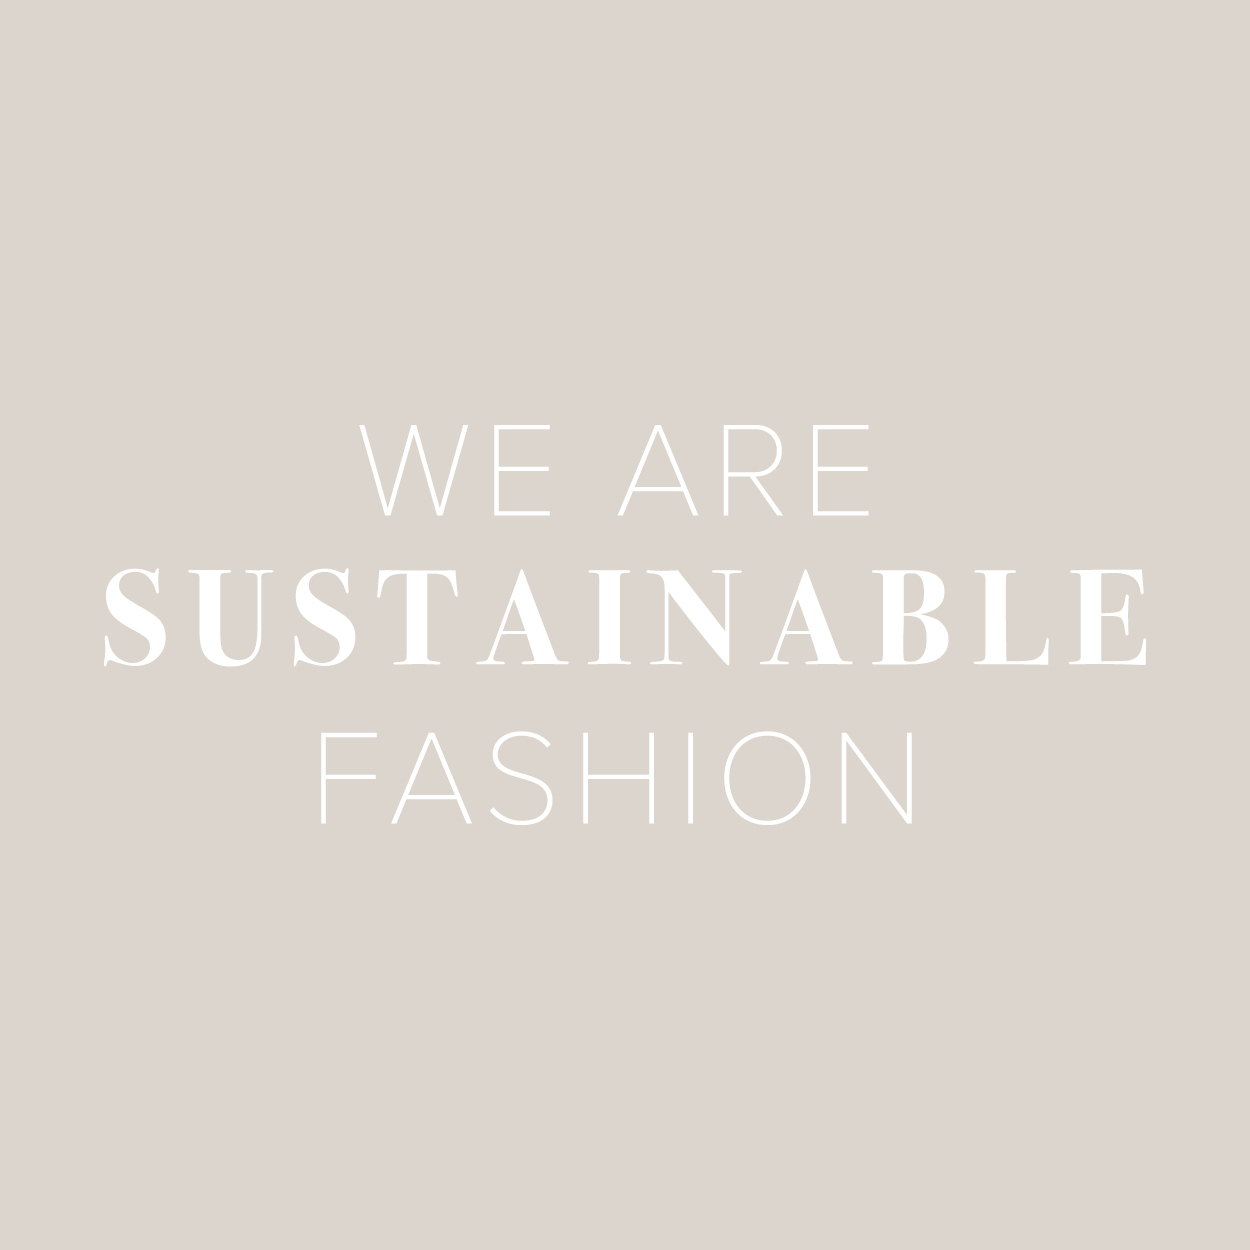 We Are Sustainable Fashion